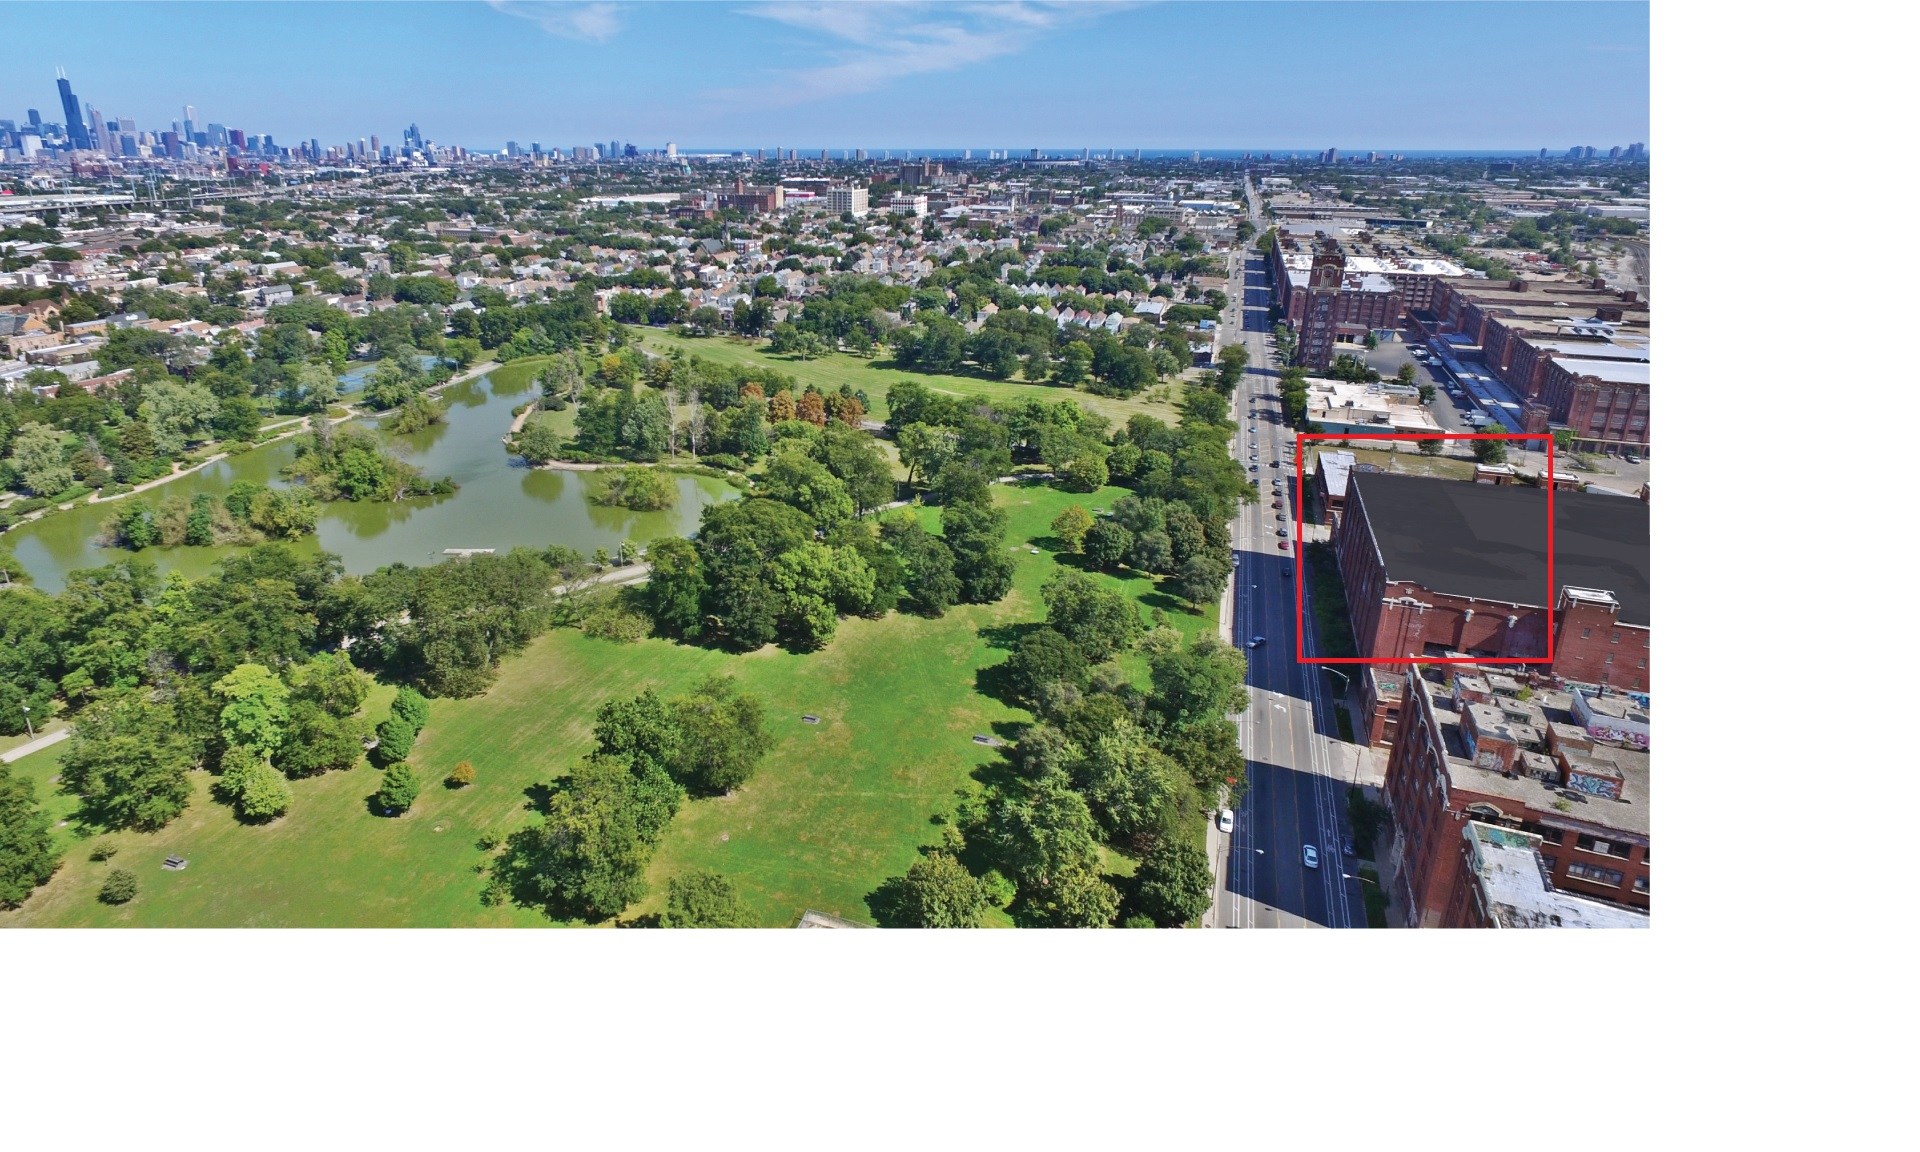 This project has recently been  featured in the  McKinley Park News     https://mckinleypark.news/news/389-development-poised-to-boom-on-pershing-road-in-mckinley-park